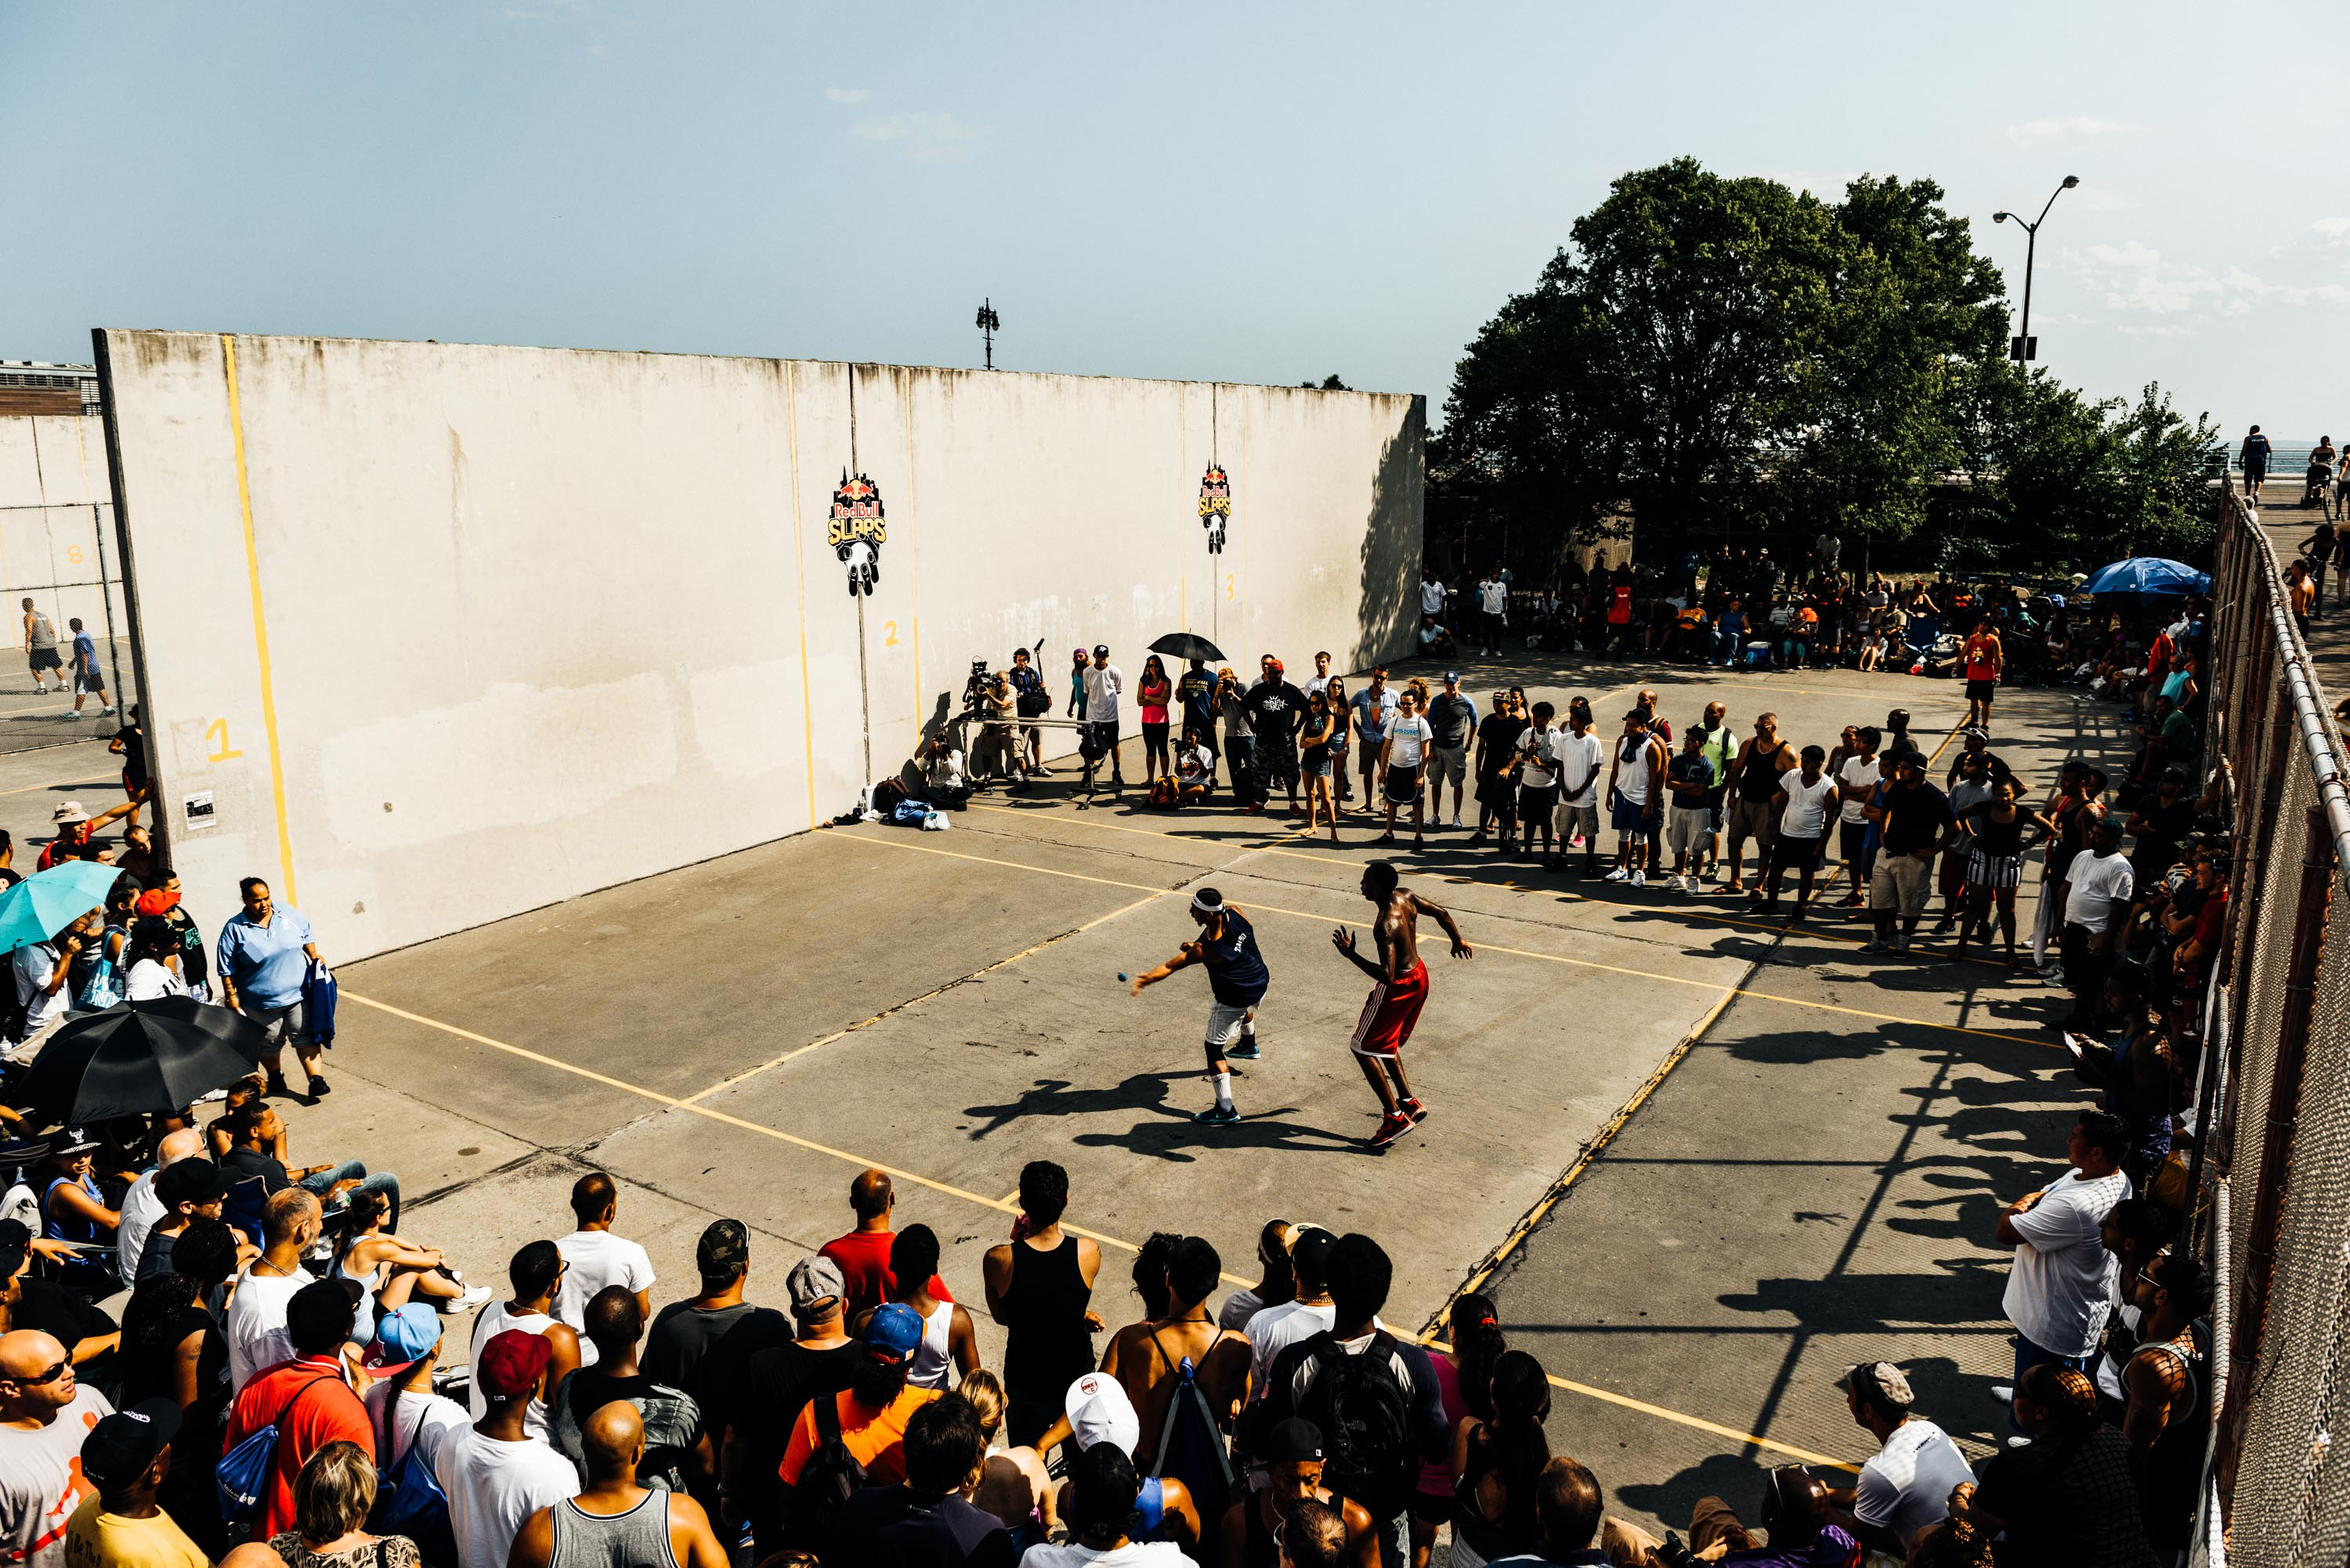 Handball for Red Bull - Greg Mionske - Advertising and Editorial Photographer in Denver